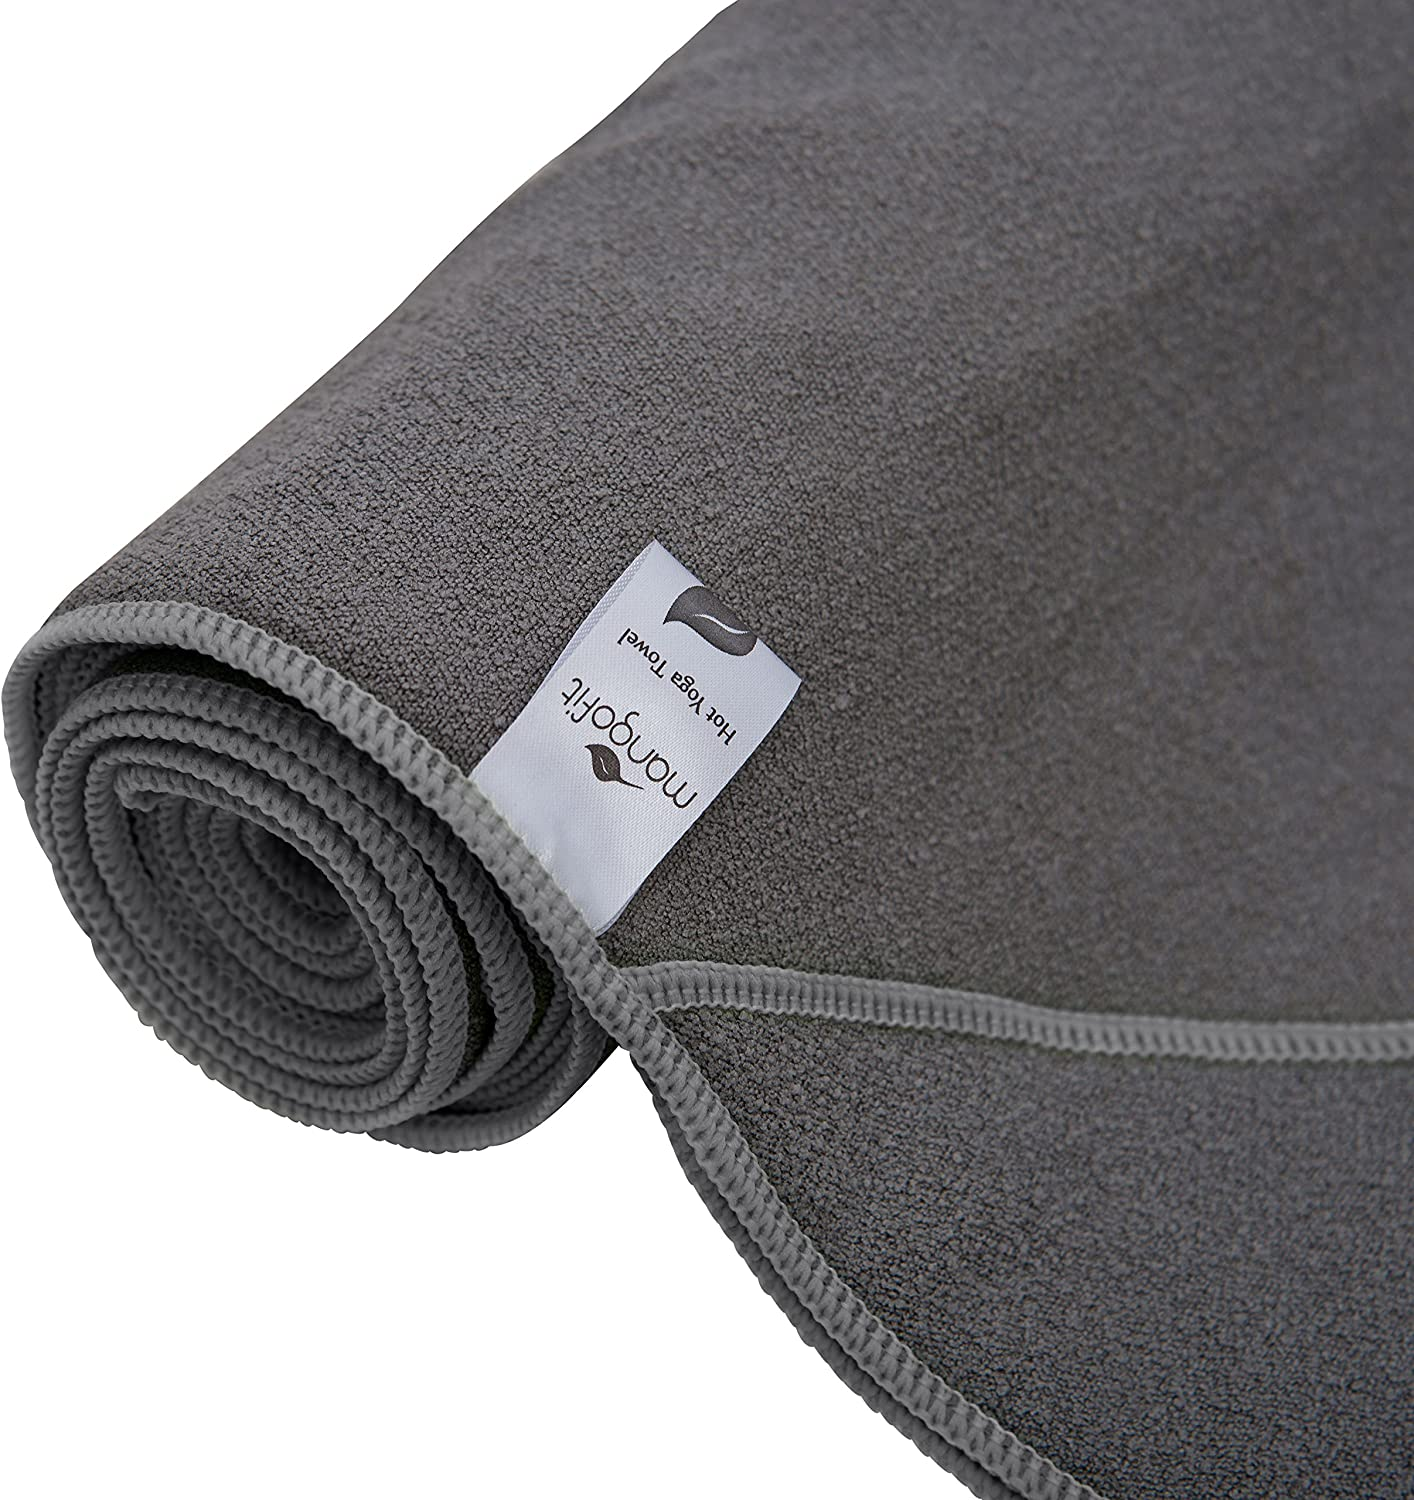 MangoFit Best Hot Yoga Towel with Anchor Fit Corners for Your Mat 72 x 24-100% Hygienic New Microfiber Fast Absorbent -Skidless, Non Slip, Yoga Towel ...